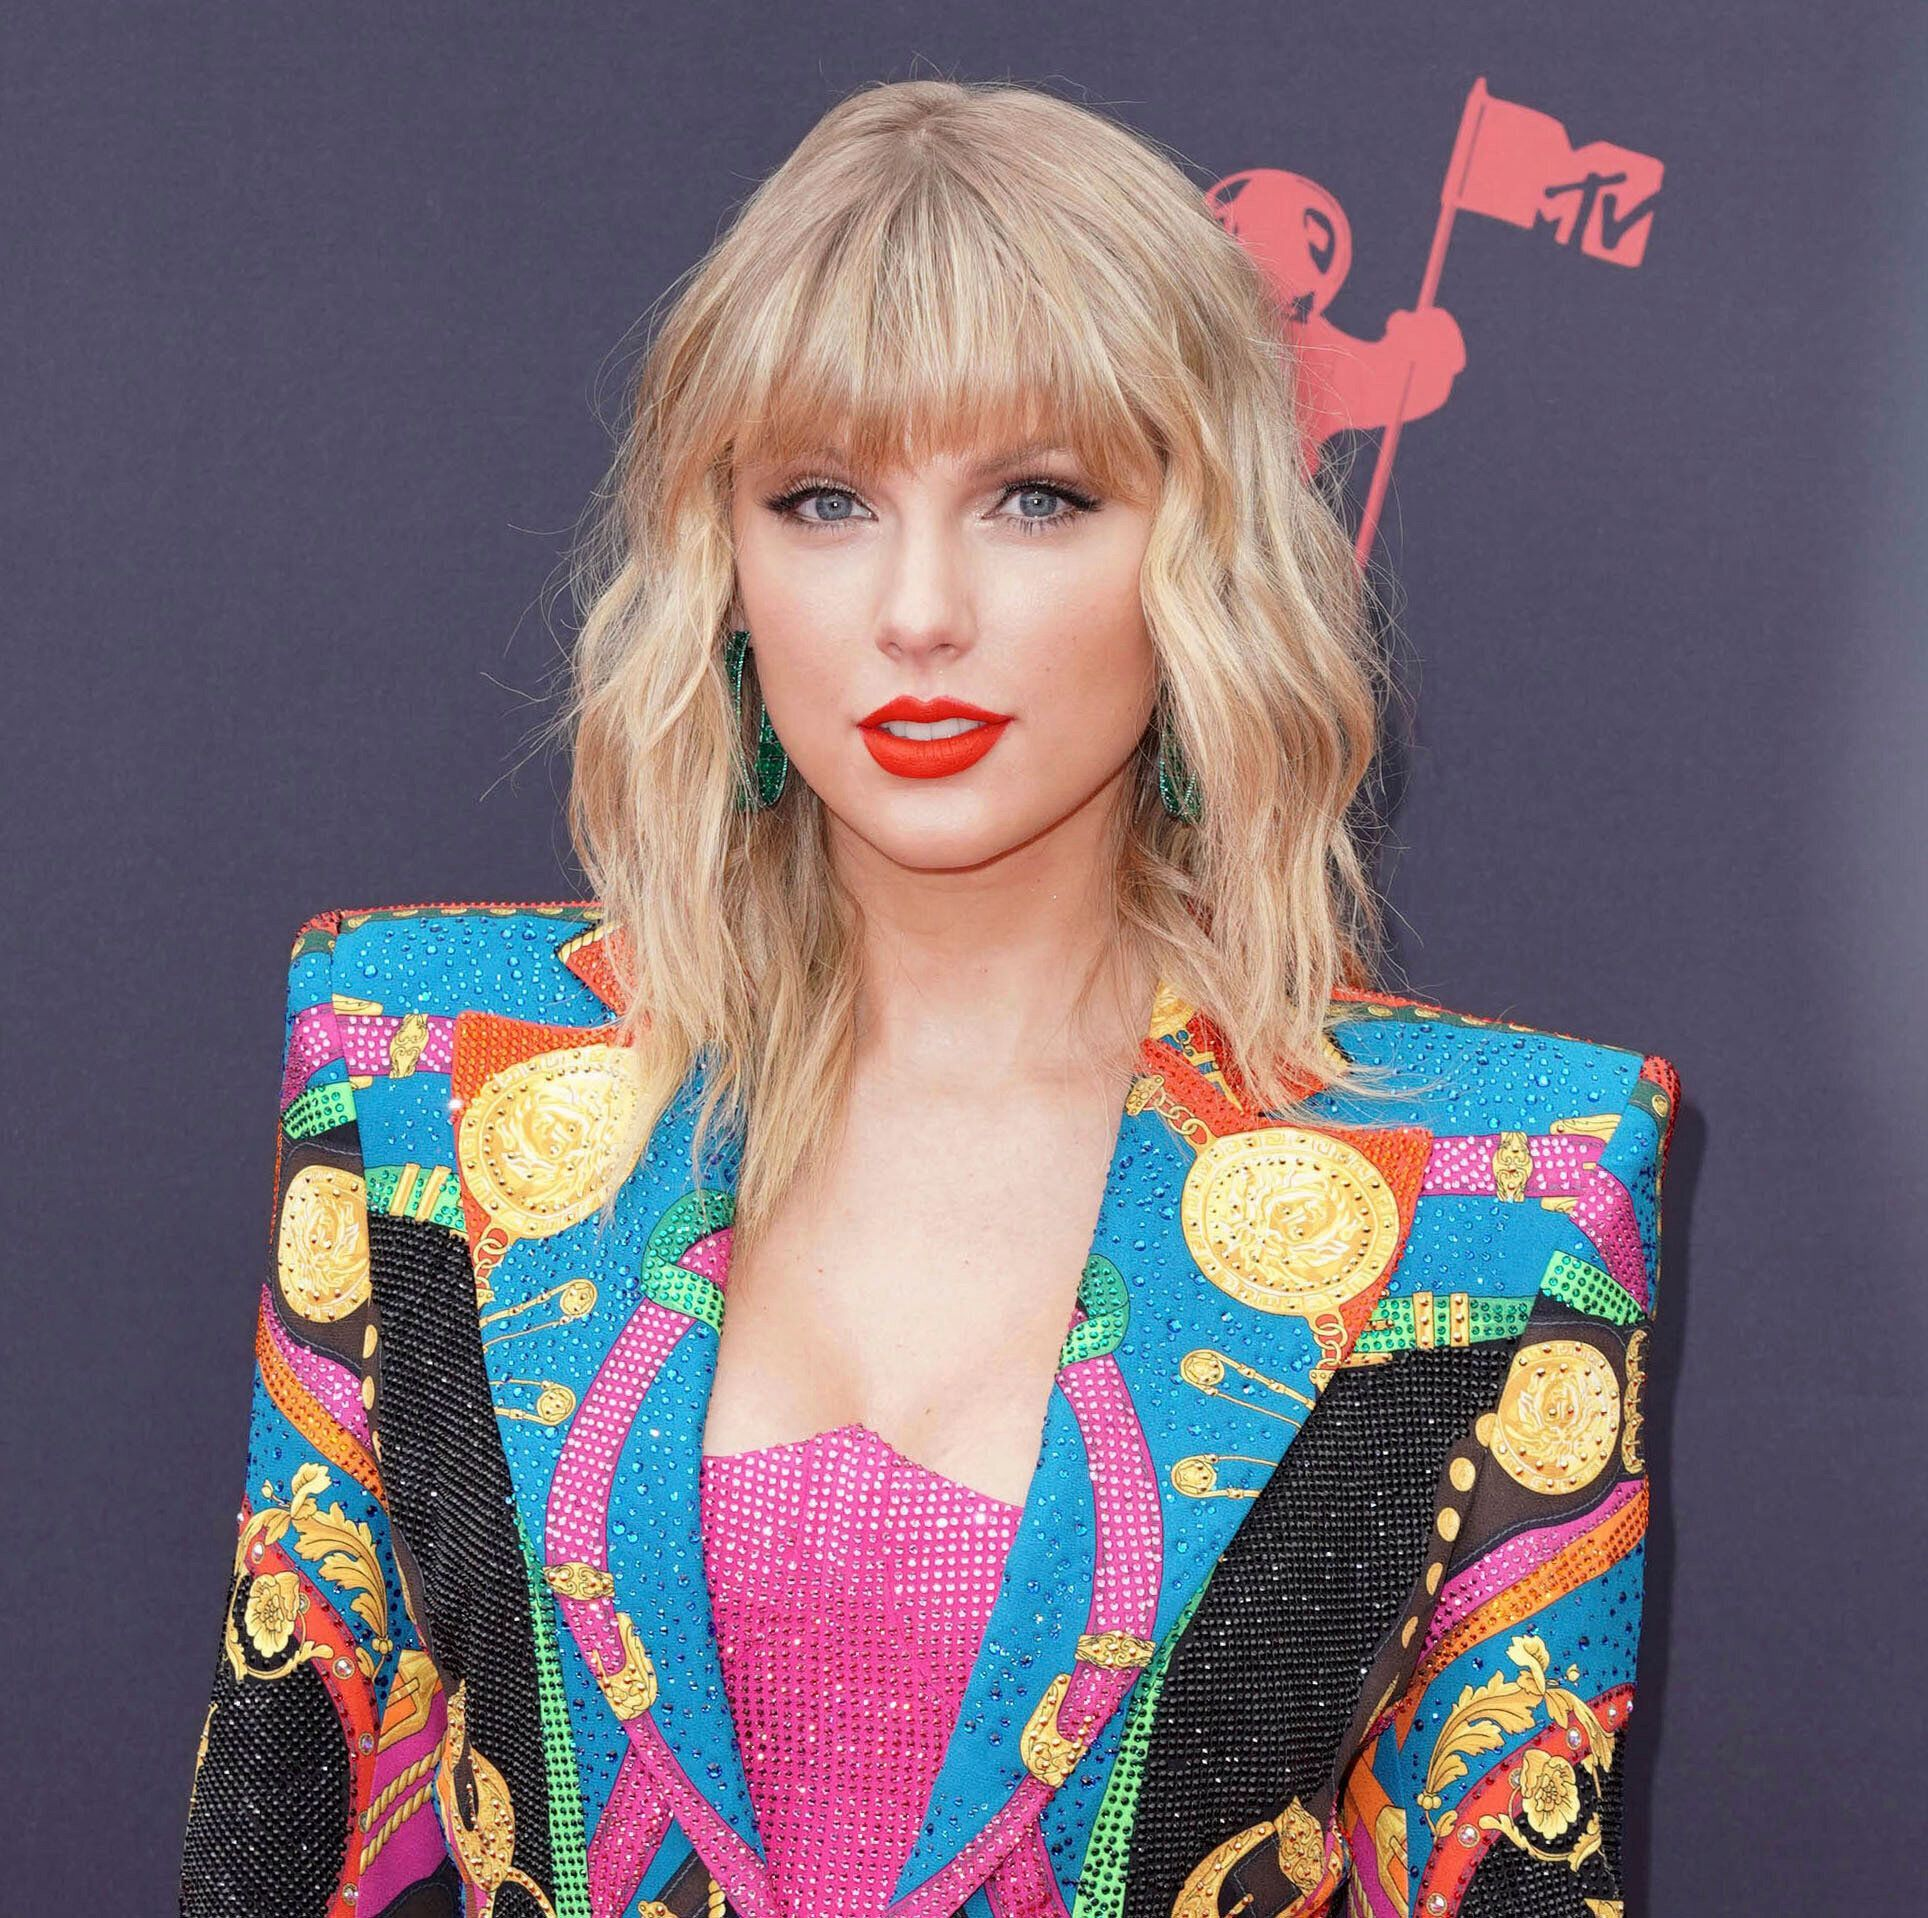 Taylor swift calls out people ignoring coronavirus safety rules